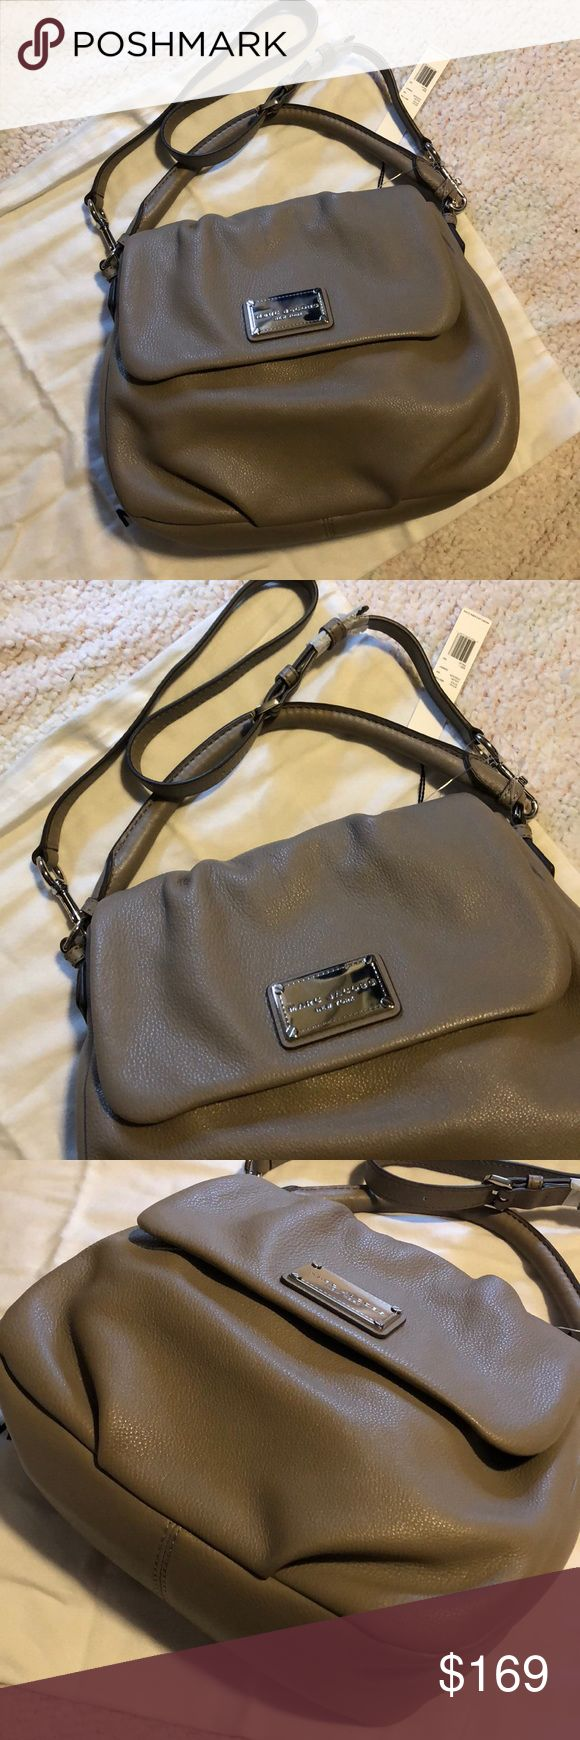 """**1 DAY SALE** Marc Jacobs Handbag Sale price only for 1 day ! New with tag Authentic Marc Jacobs Bag Color : Cement Size : Appox 10"""" (H) x 4.5"""" (D) x 12"""" (L) 100% cow leather Marc Jacobs Bags"""